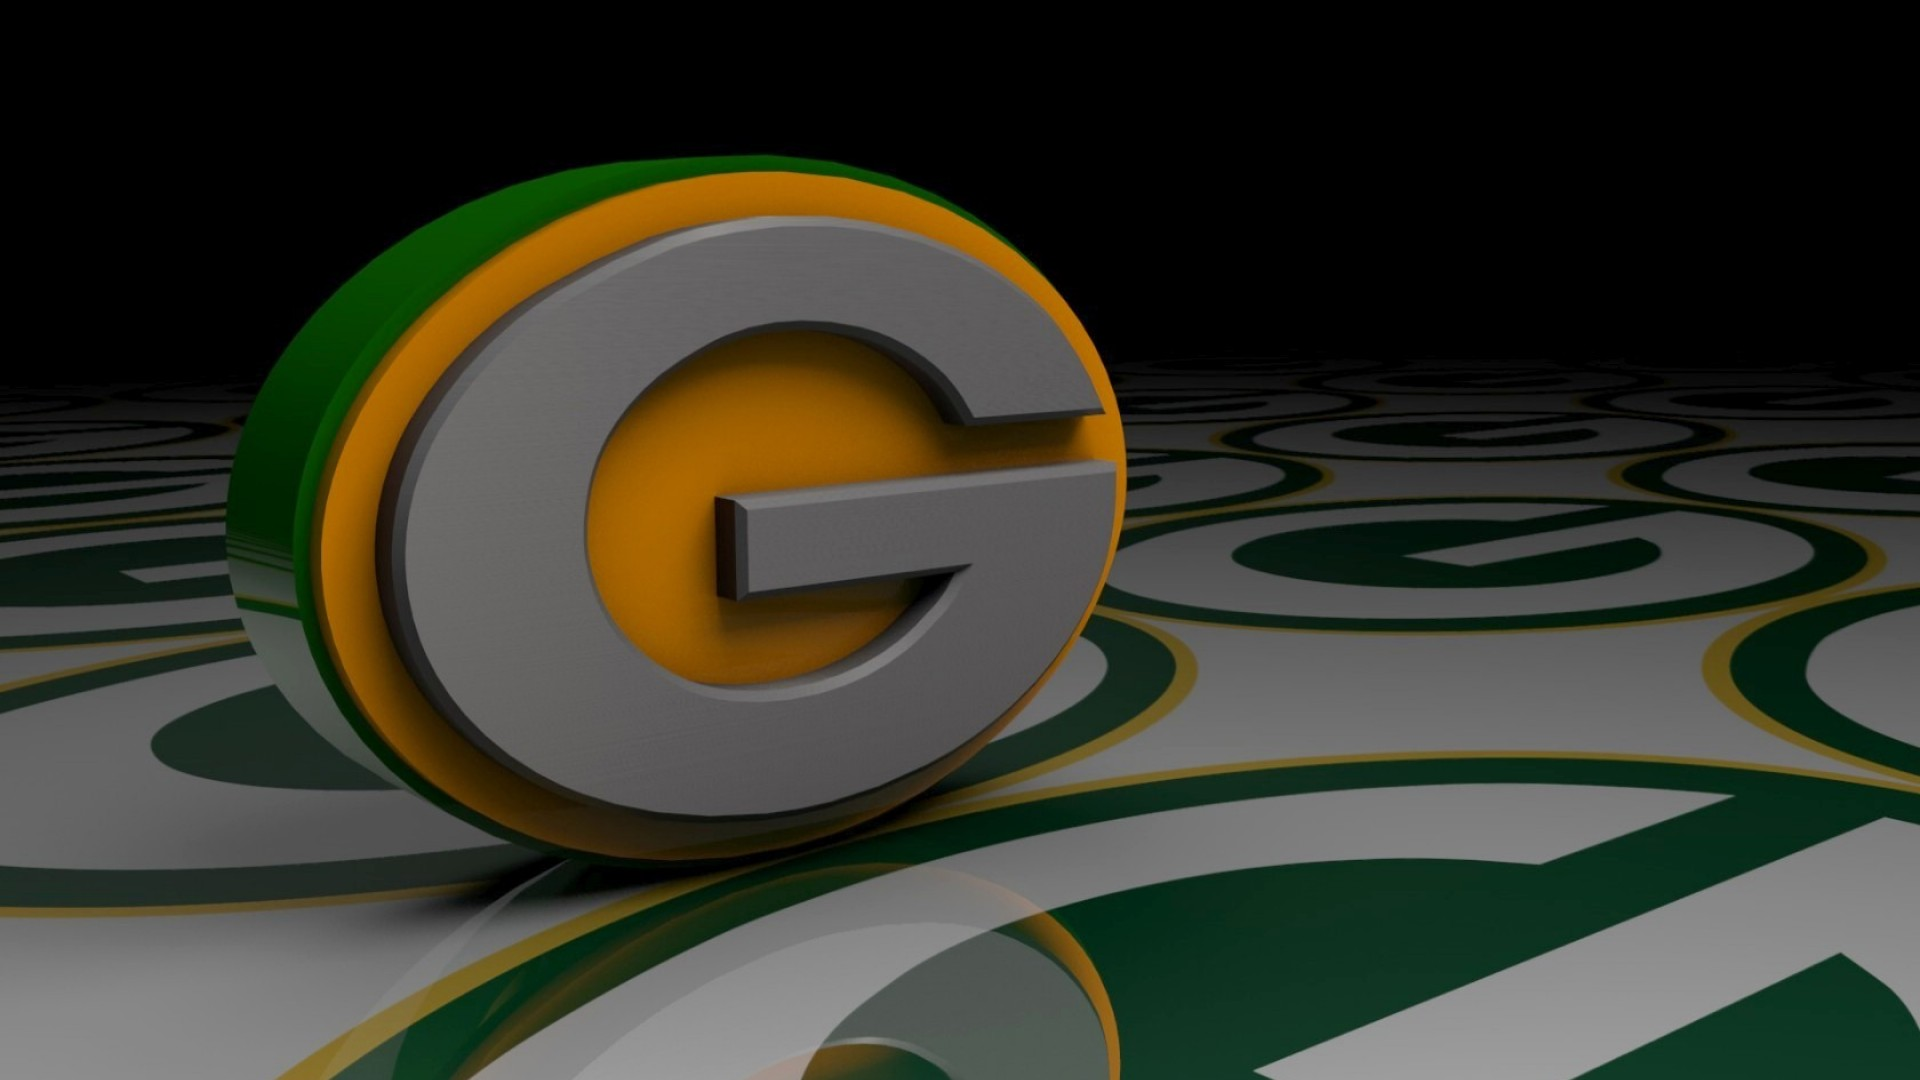 Green-Bay-Packers-Download-HD-Pinterest-wallpaper-wpc5805556